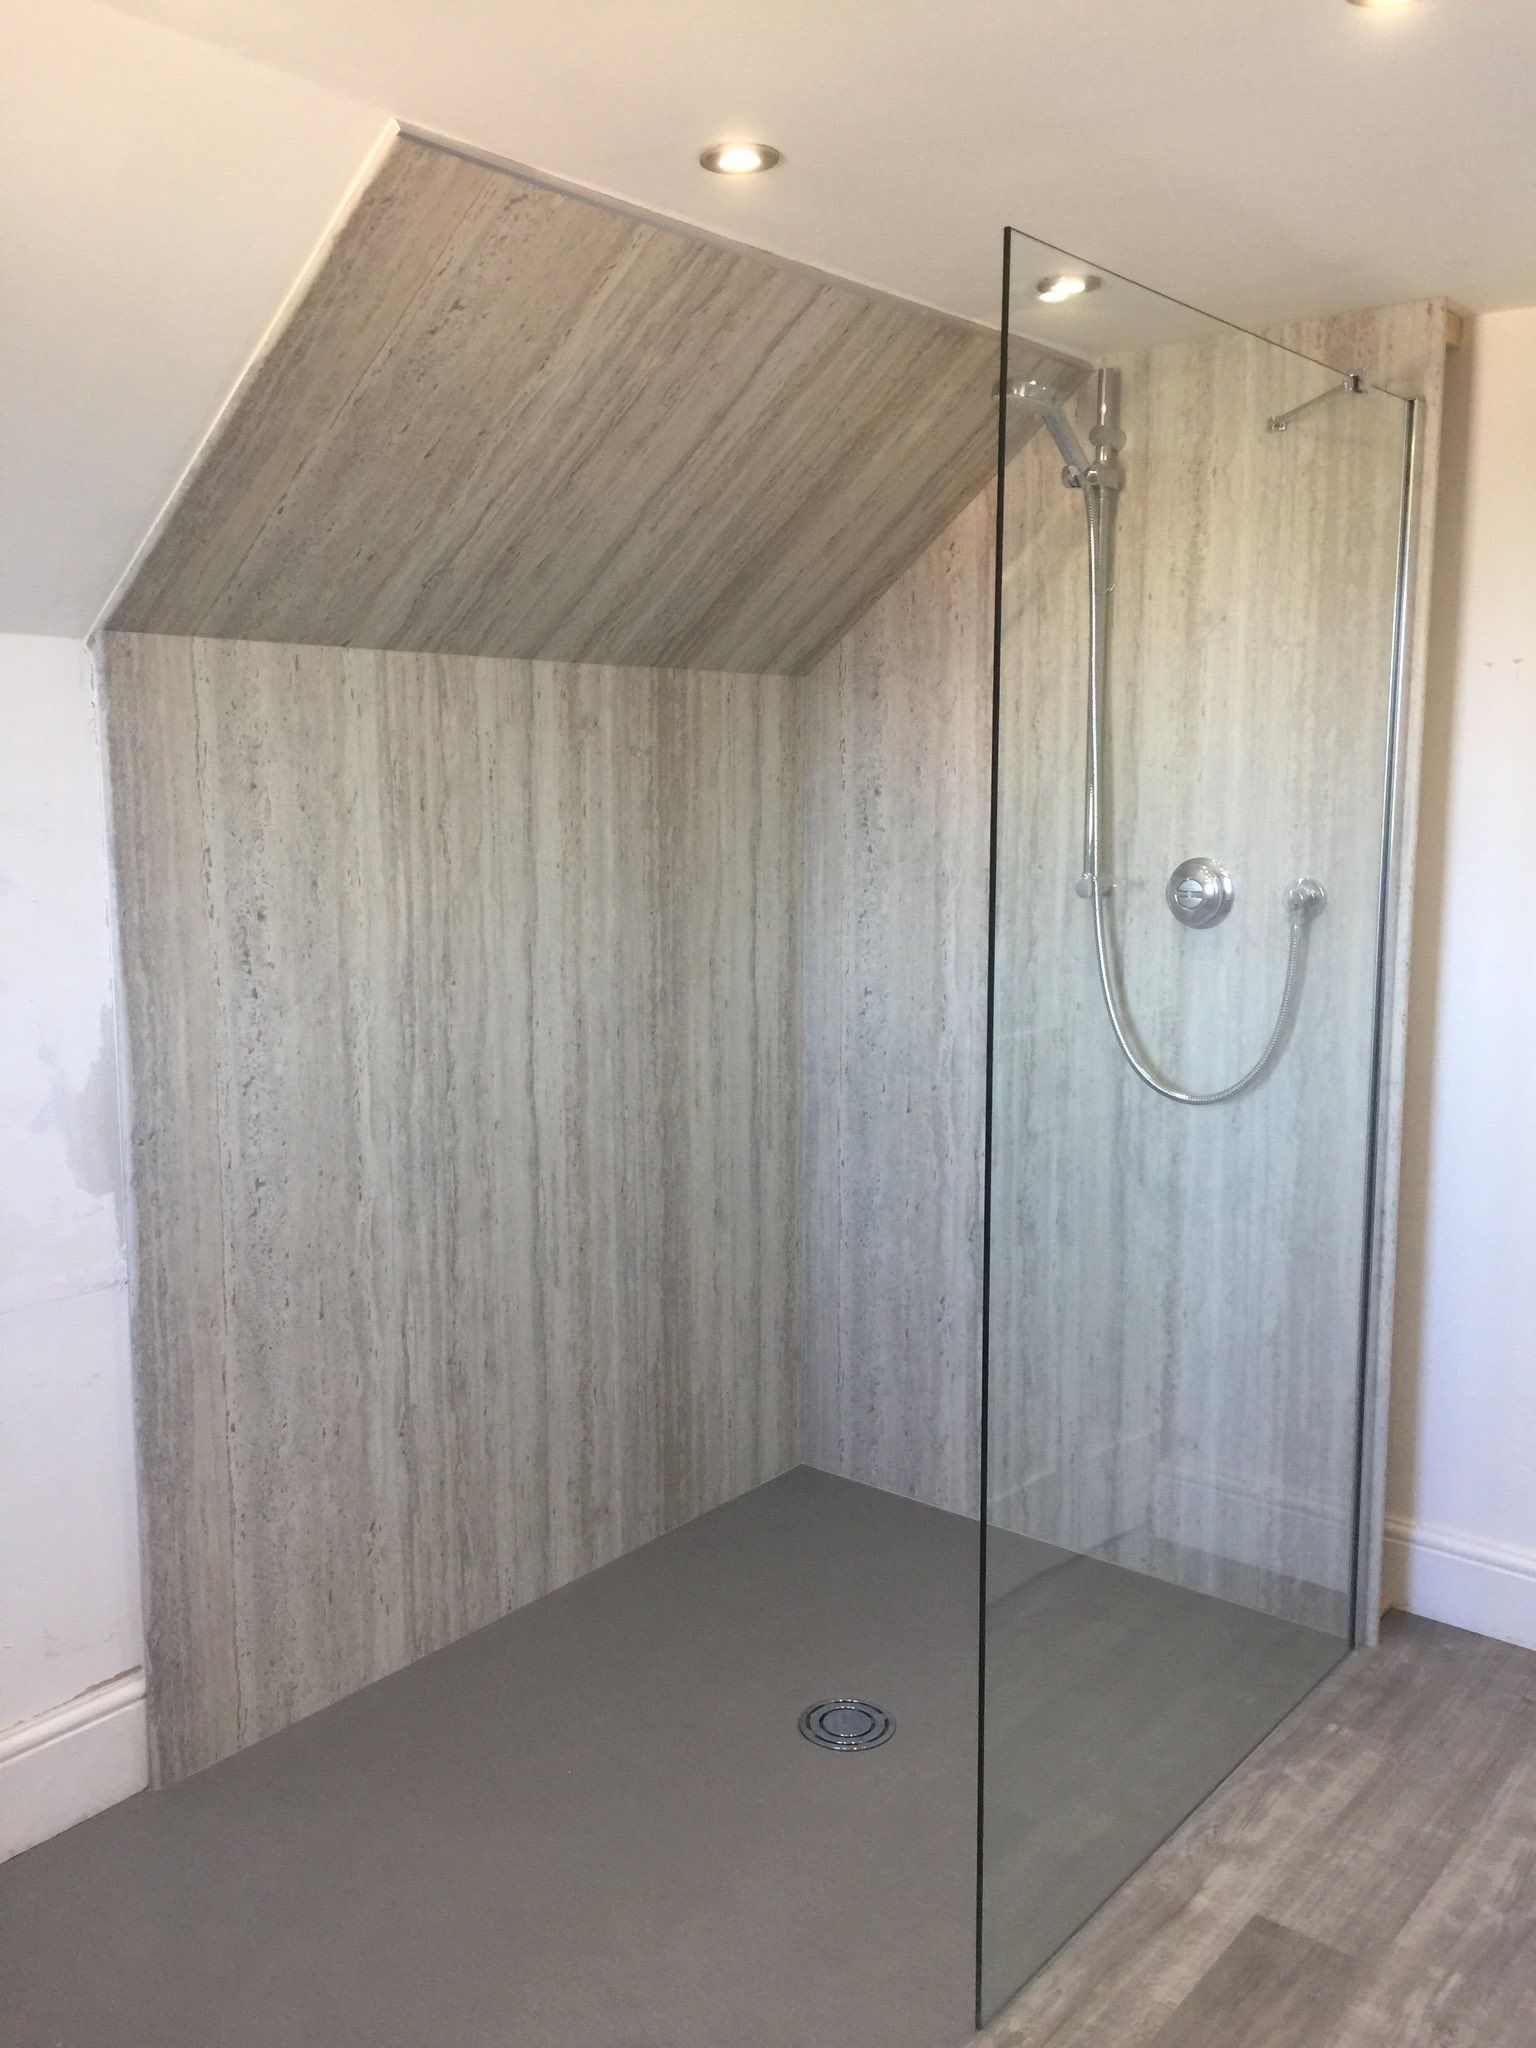 Customer Case Study Wall Panelling Bushboard Nuance Platinum Travertine Bushboard S Nuance Collection Is Wall Paneling Fitted Bathroom Bathroom Interior